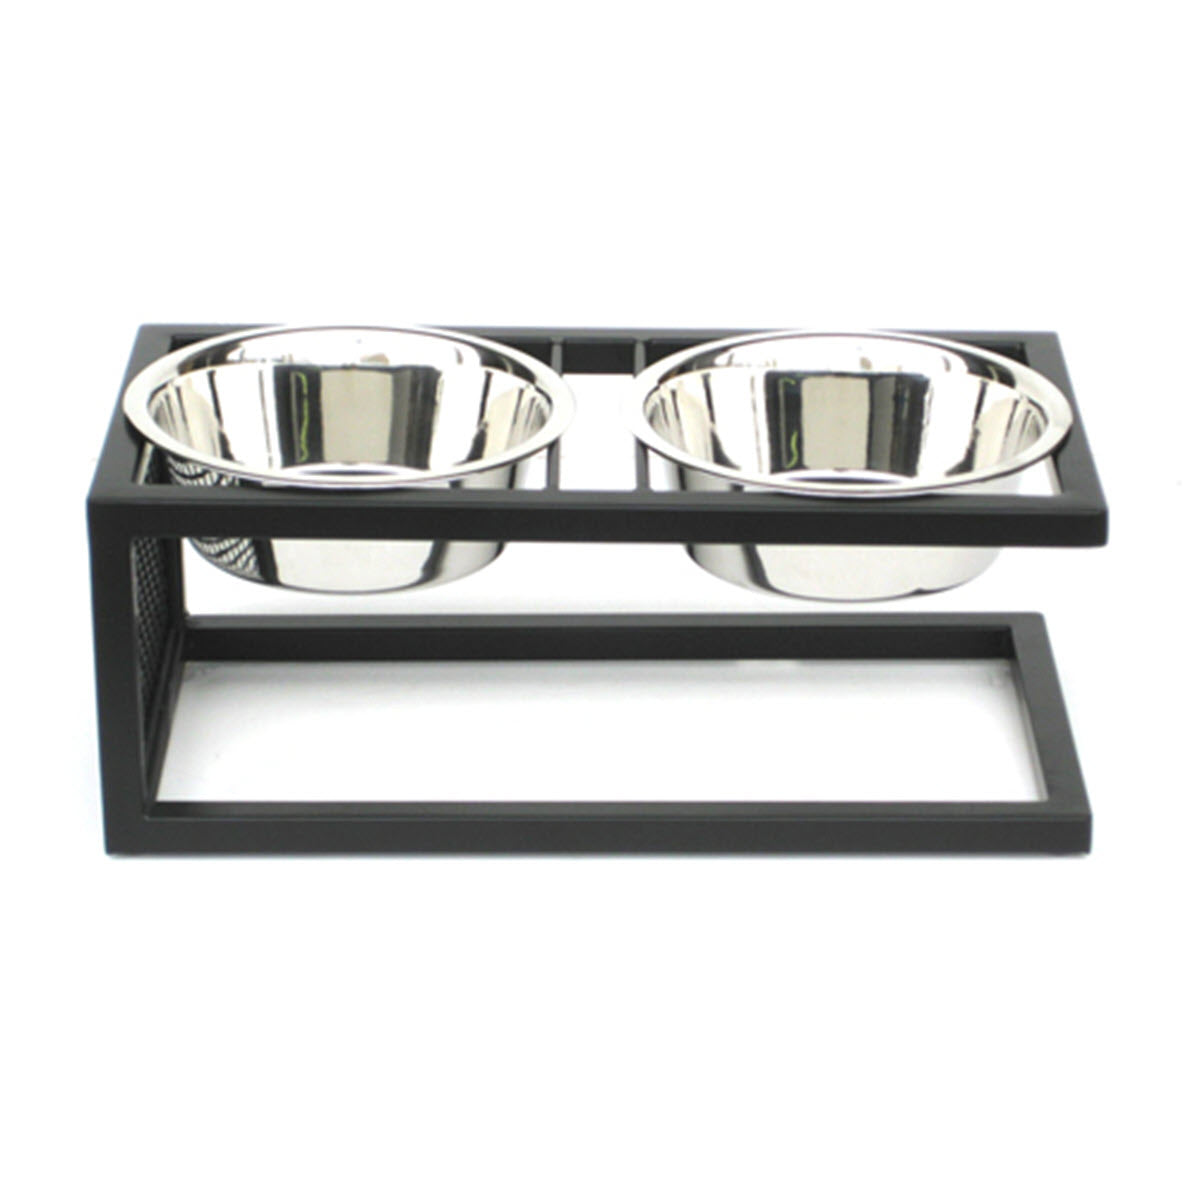 NMN Designs Canteliever Elevated dog Bowls Raised Dog Feeder Stand